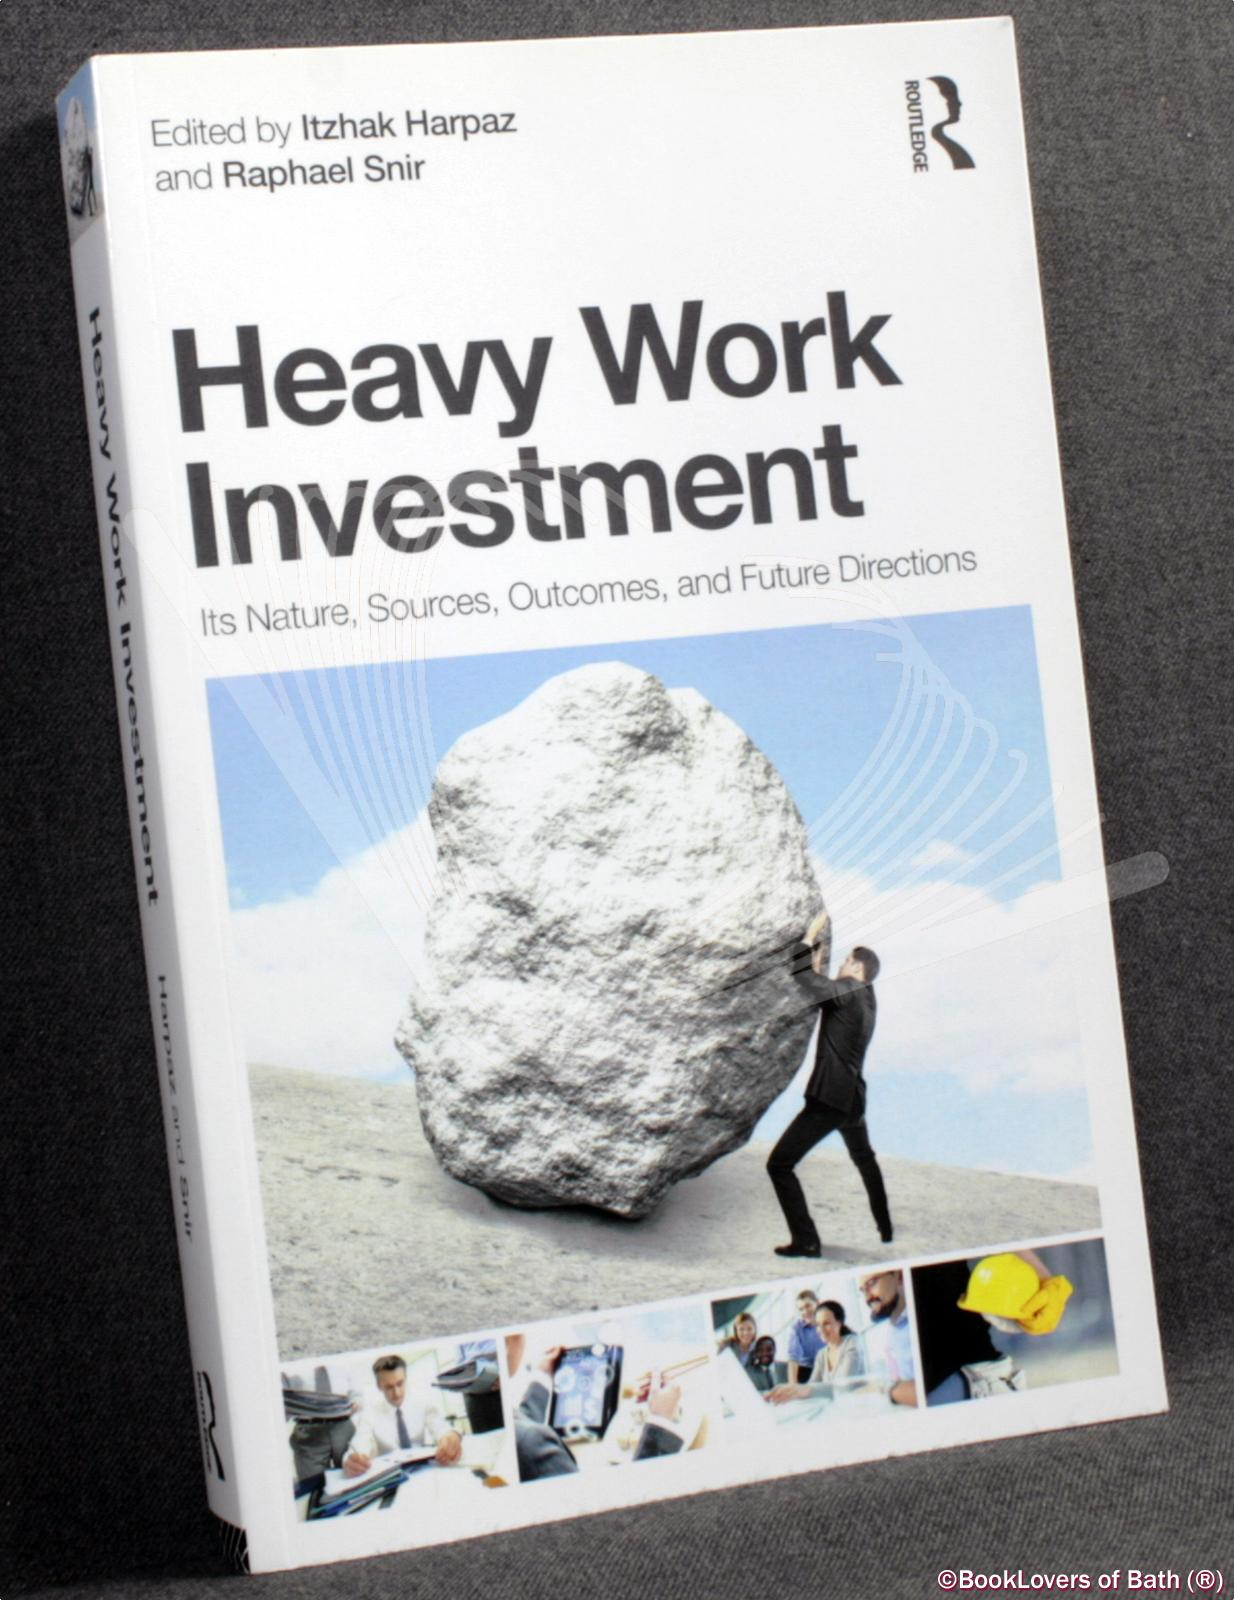 Heavy Work Investment: Its Nature, Sources, Outcomes, and Future Directions - Edited by Itzhak Harpaz & Raphael Snir